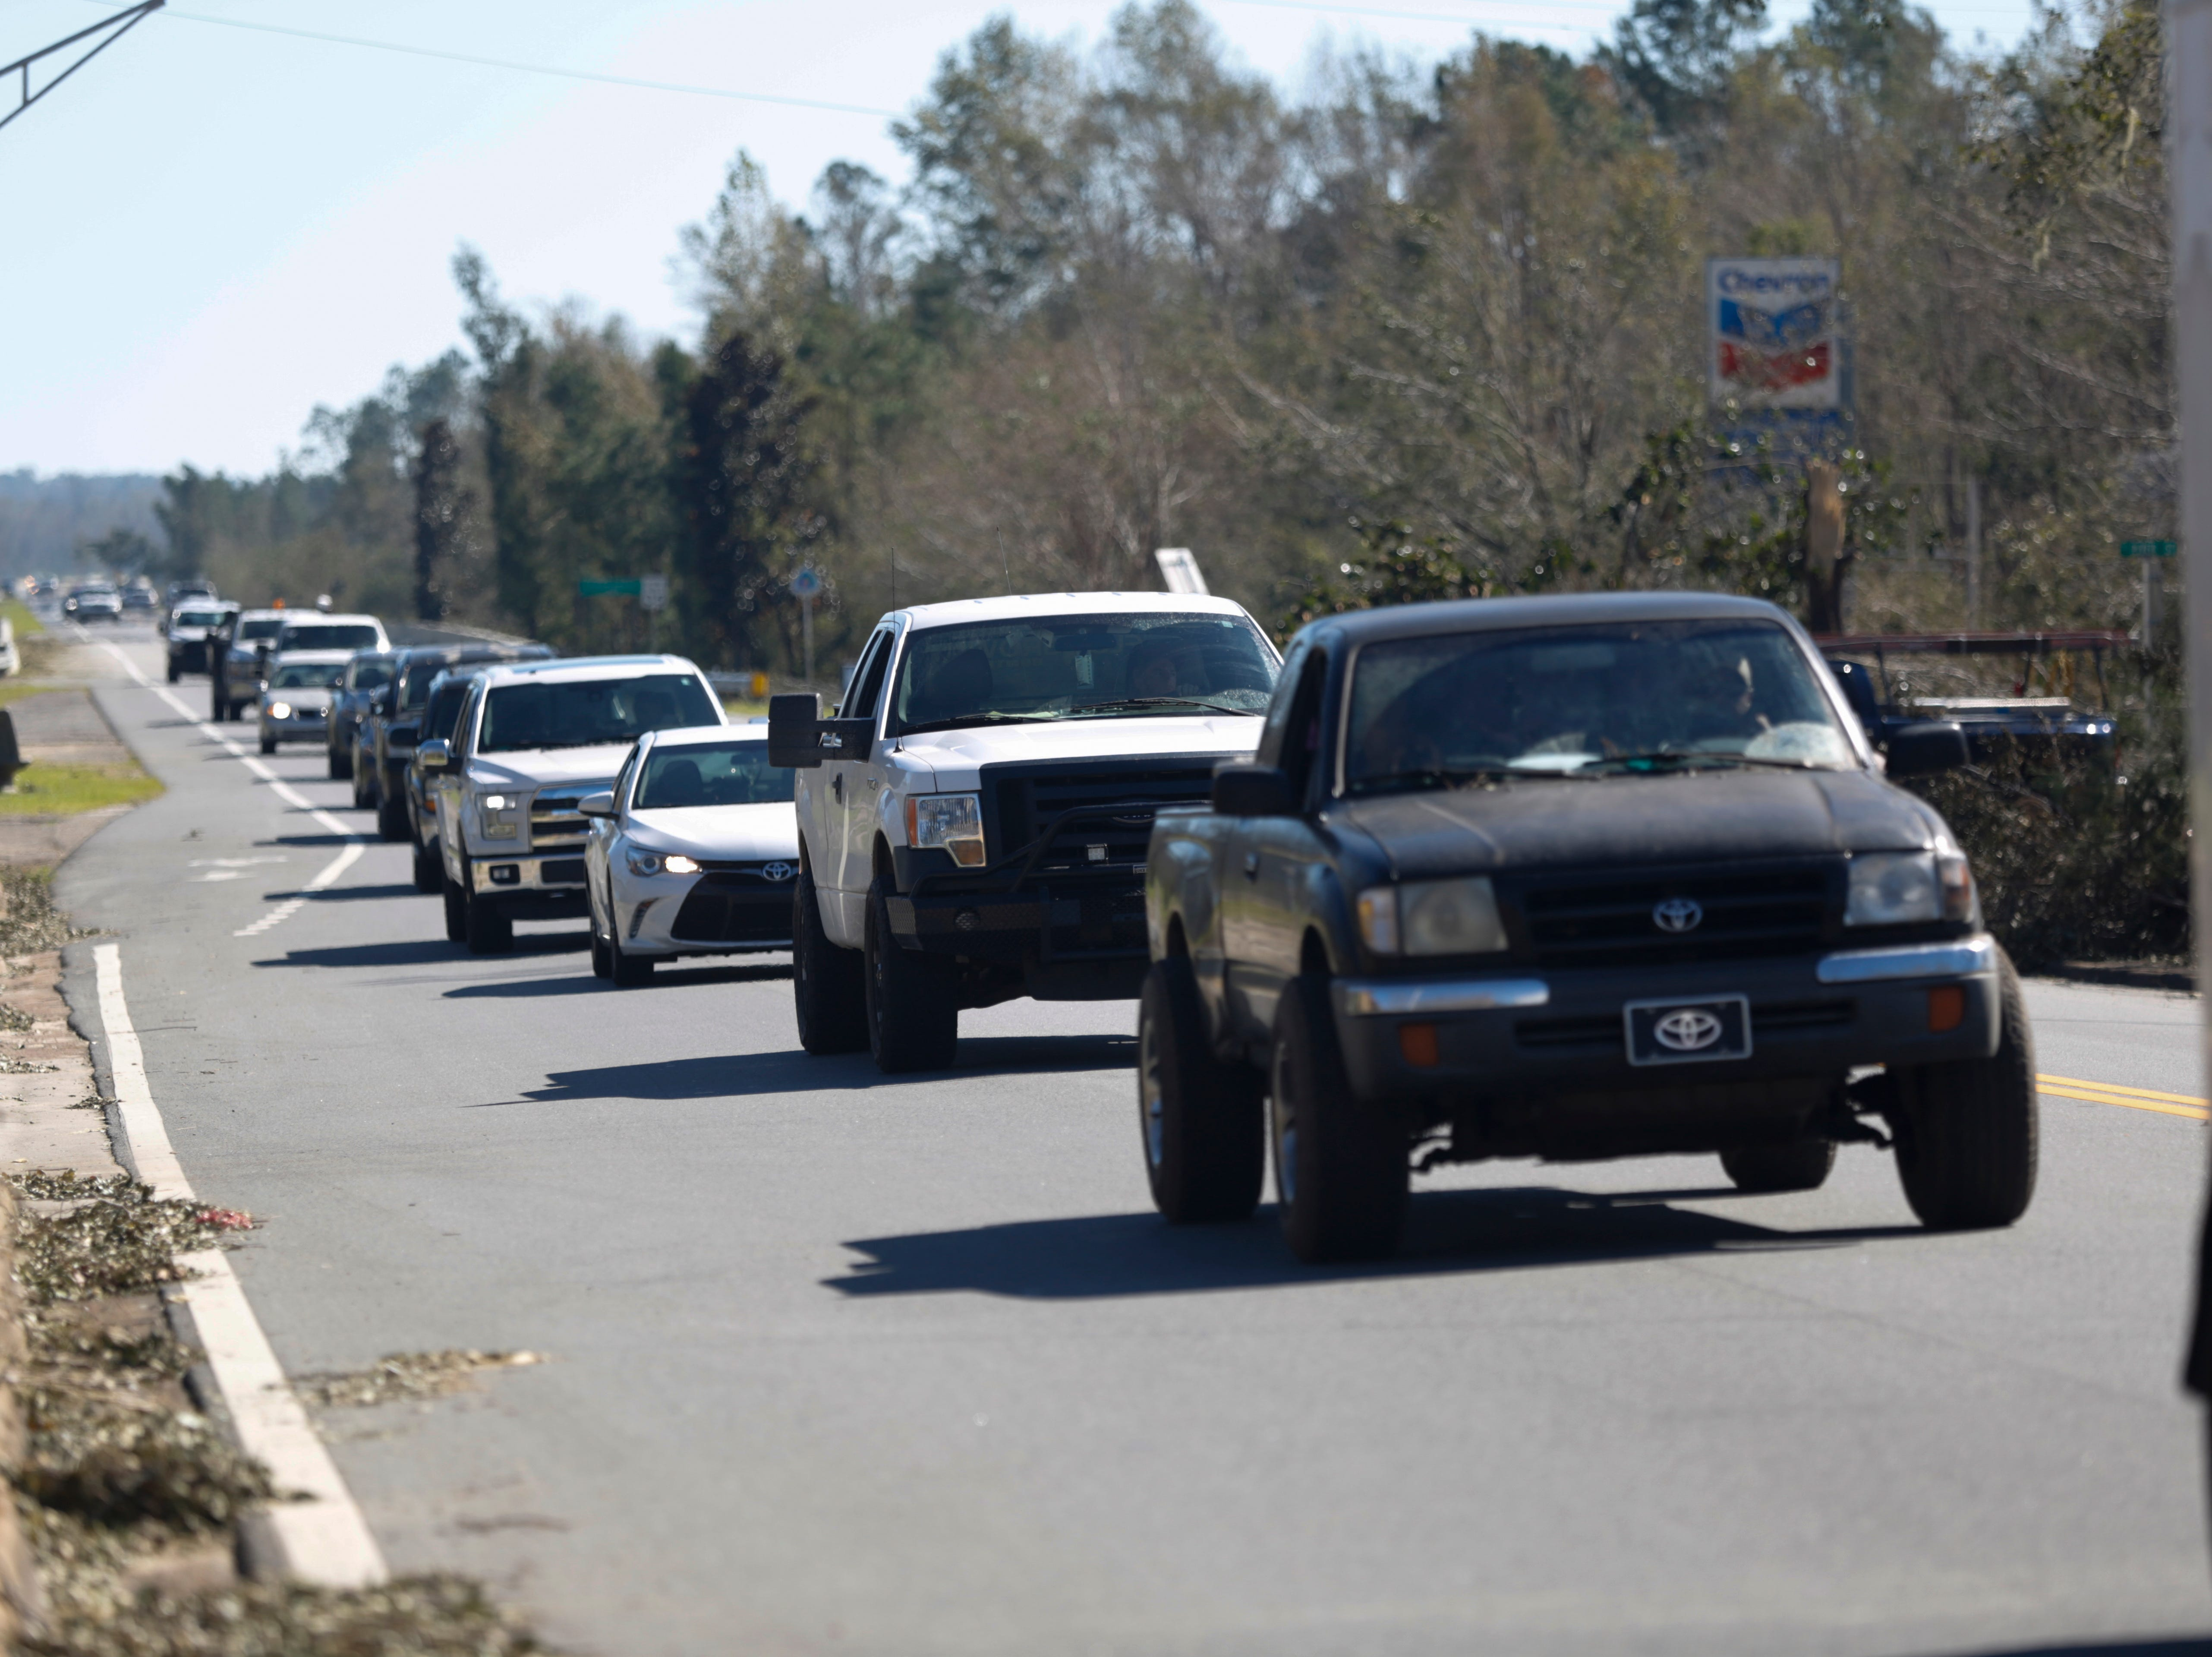 Miles of cars drive into Blountstown via Highway 20 in Blountstown, Fla. in the aftermath of Hurricane Michael Friday, Oct. 12, 2018.